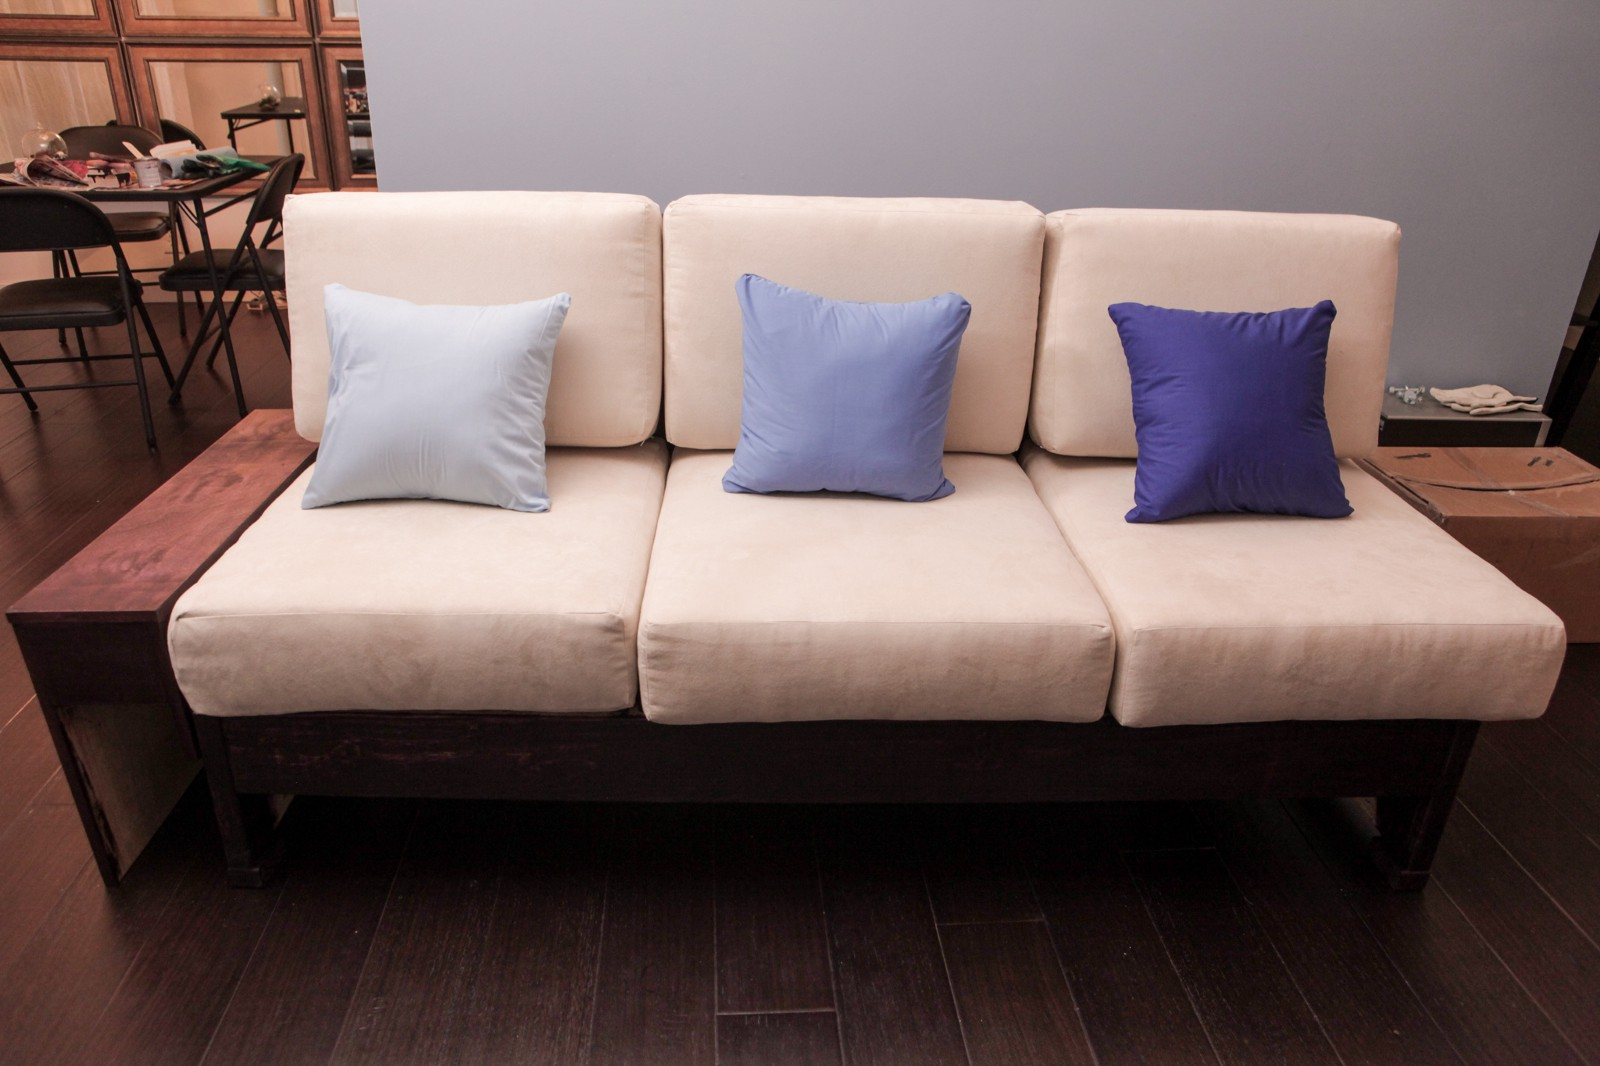 Sofa Cushions That Don't Go Flat So You Want To Make A Sofa David Hsu Medium